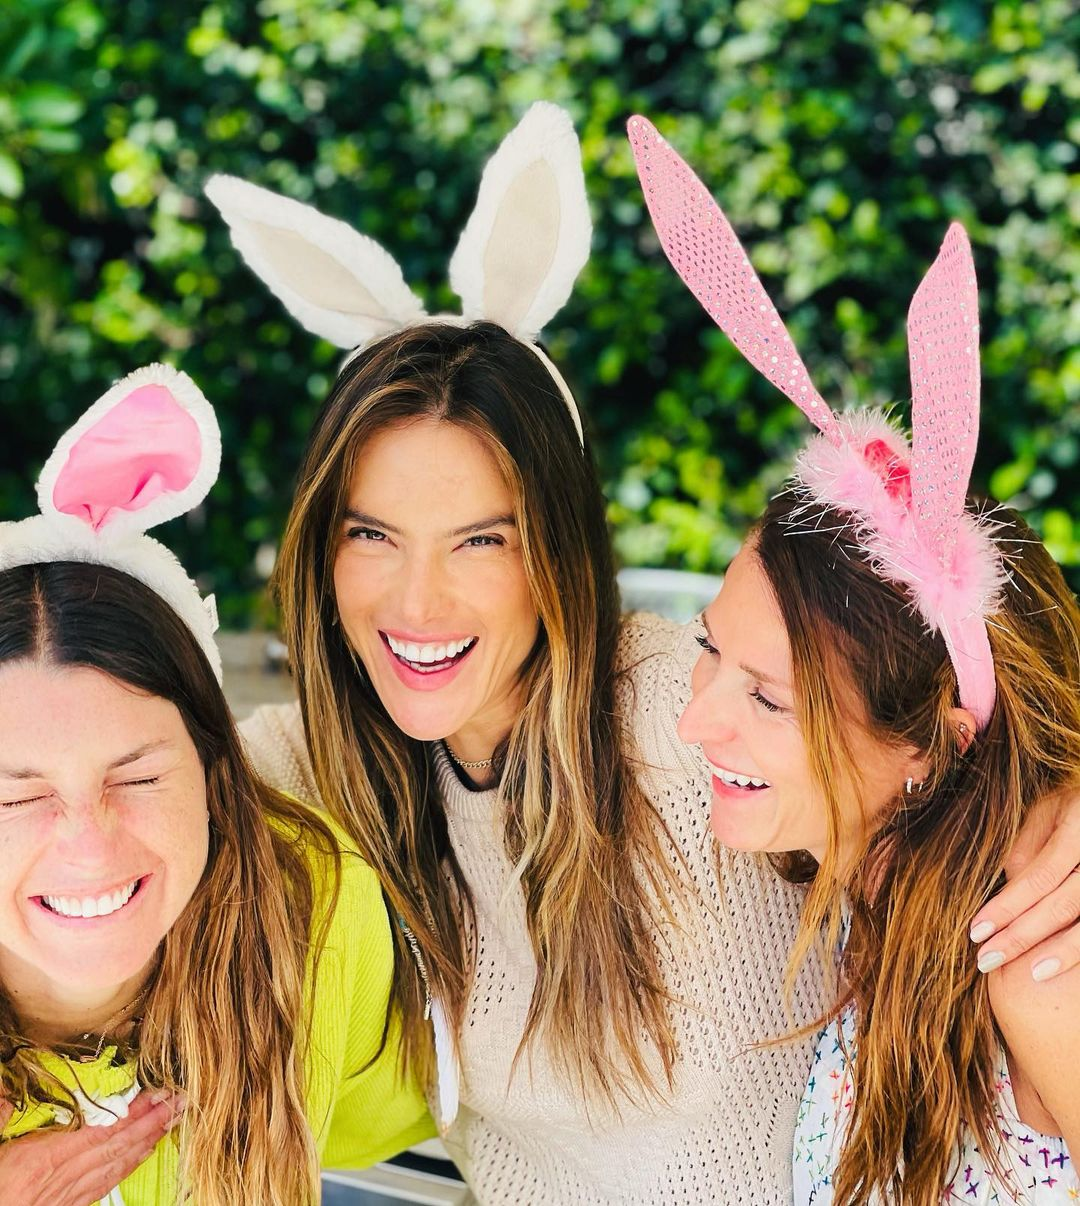 Alessandra Ambrosio gave a sexy kiss to her boyfriend at Easter celebrations 4